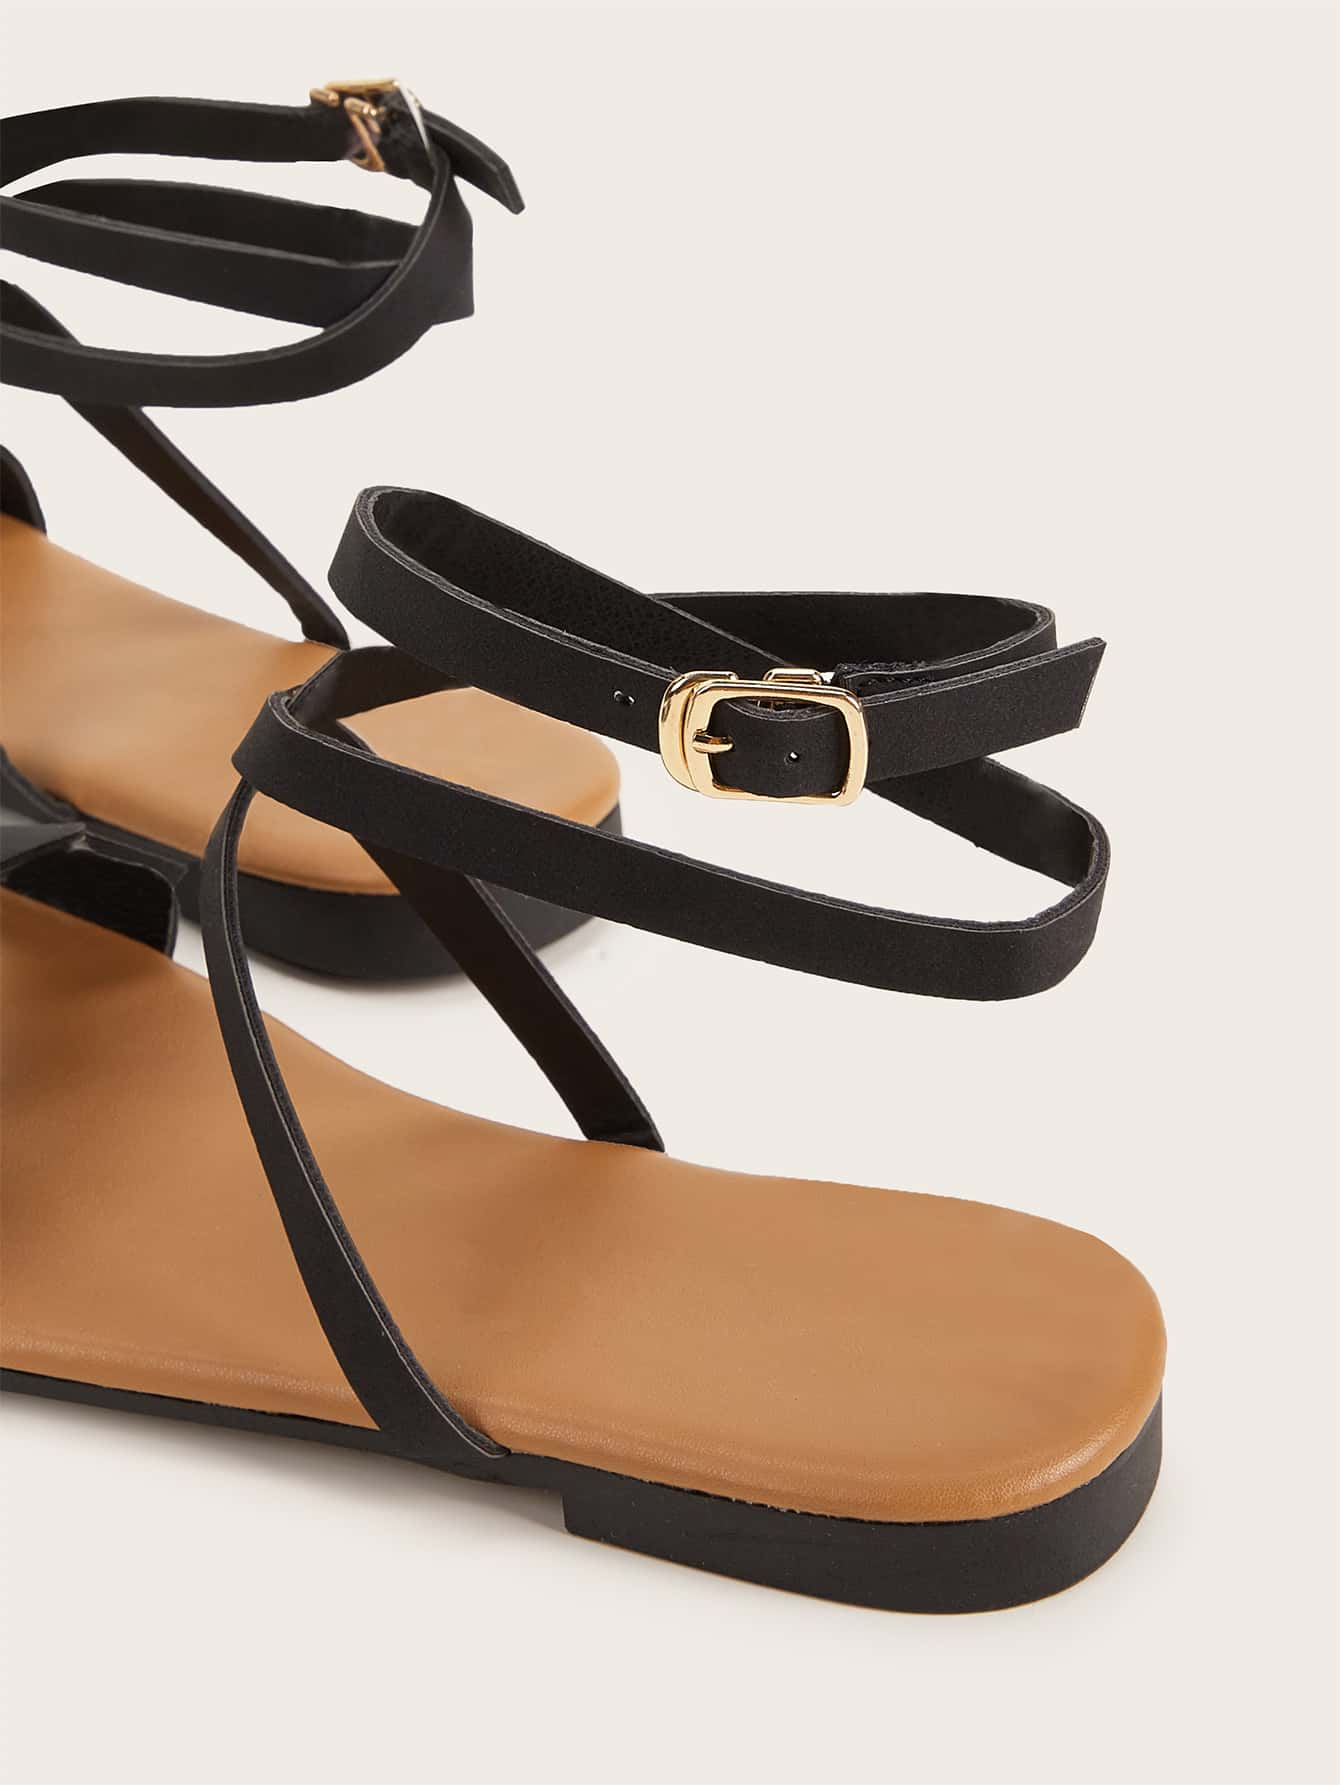 Scalloped Detail Buckle Strap Sandals - FLJ CORPORATIONS